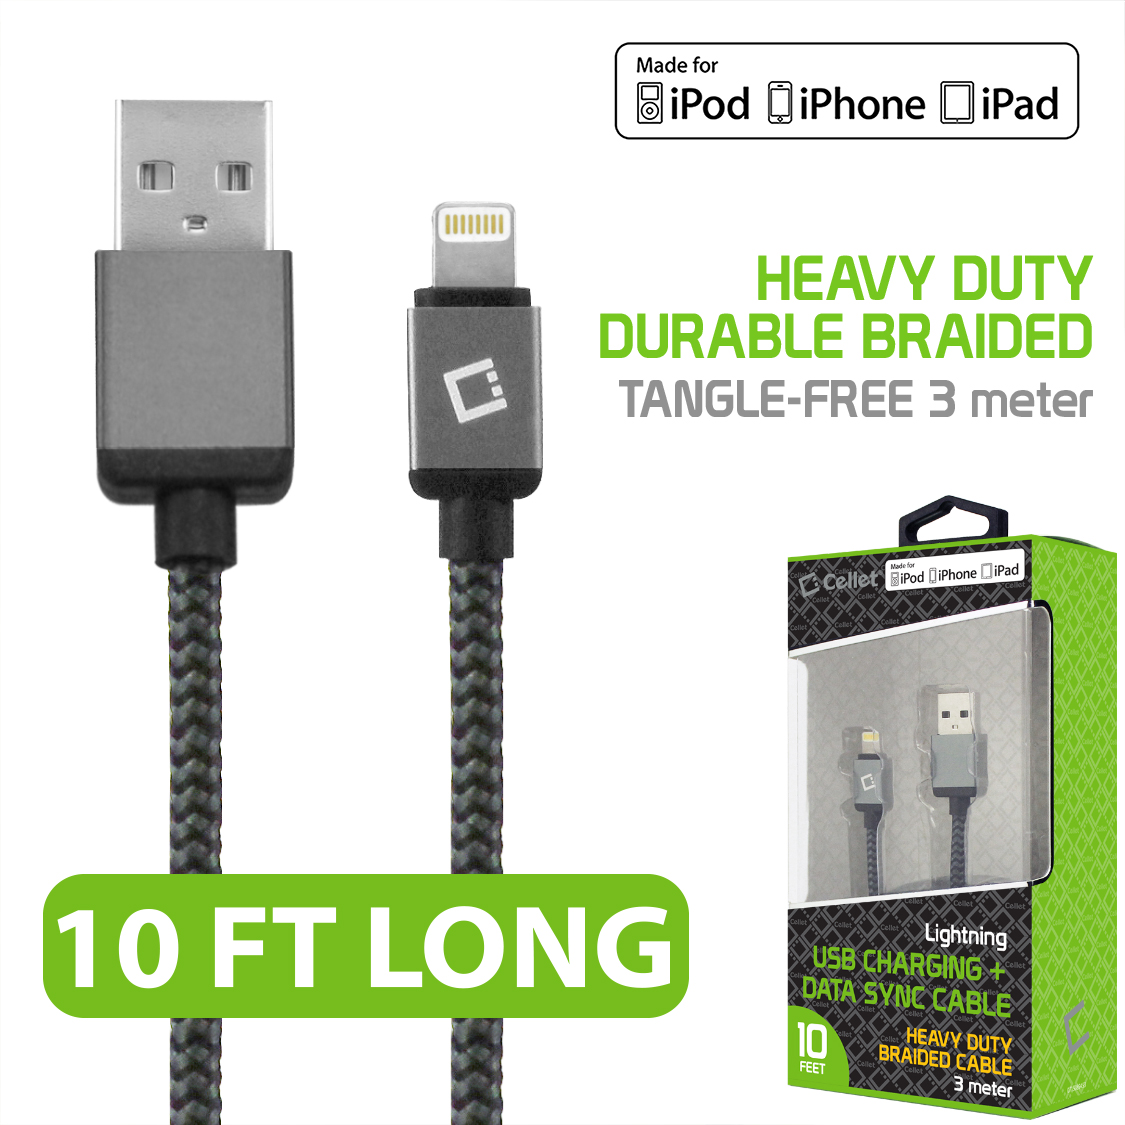 Apple MFi Certified 10 Feet Heavy-Duty Nylon-Braided Data Sync Lighting to USB Charging Cable for iPhones & iPads by Cellet